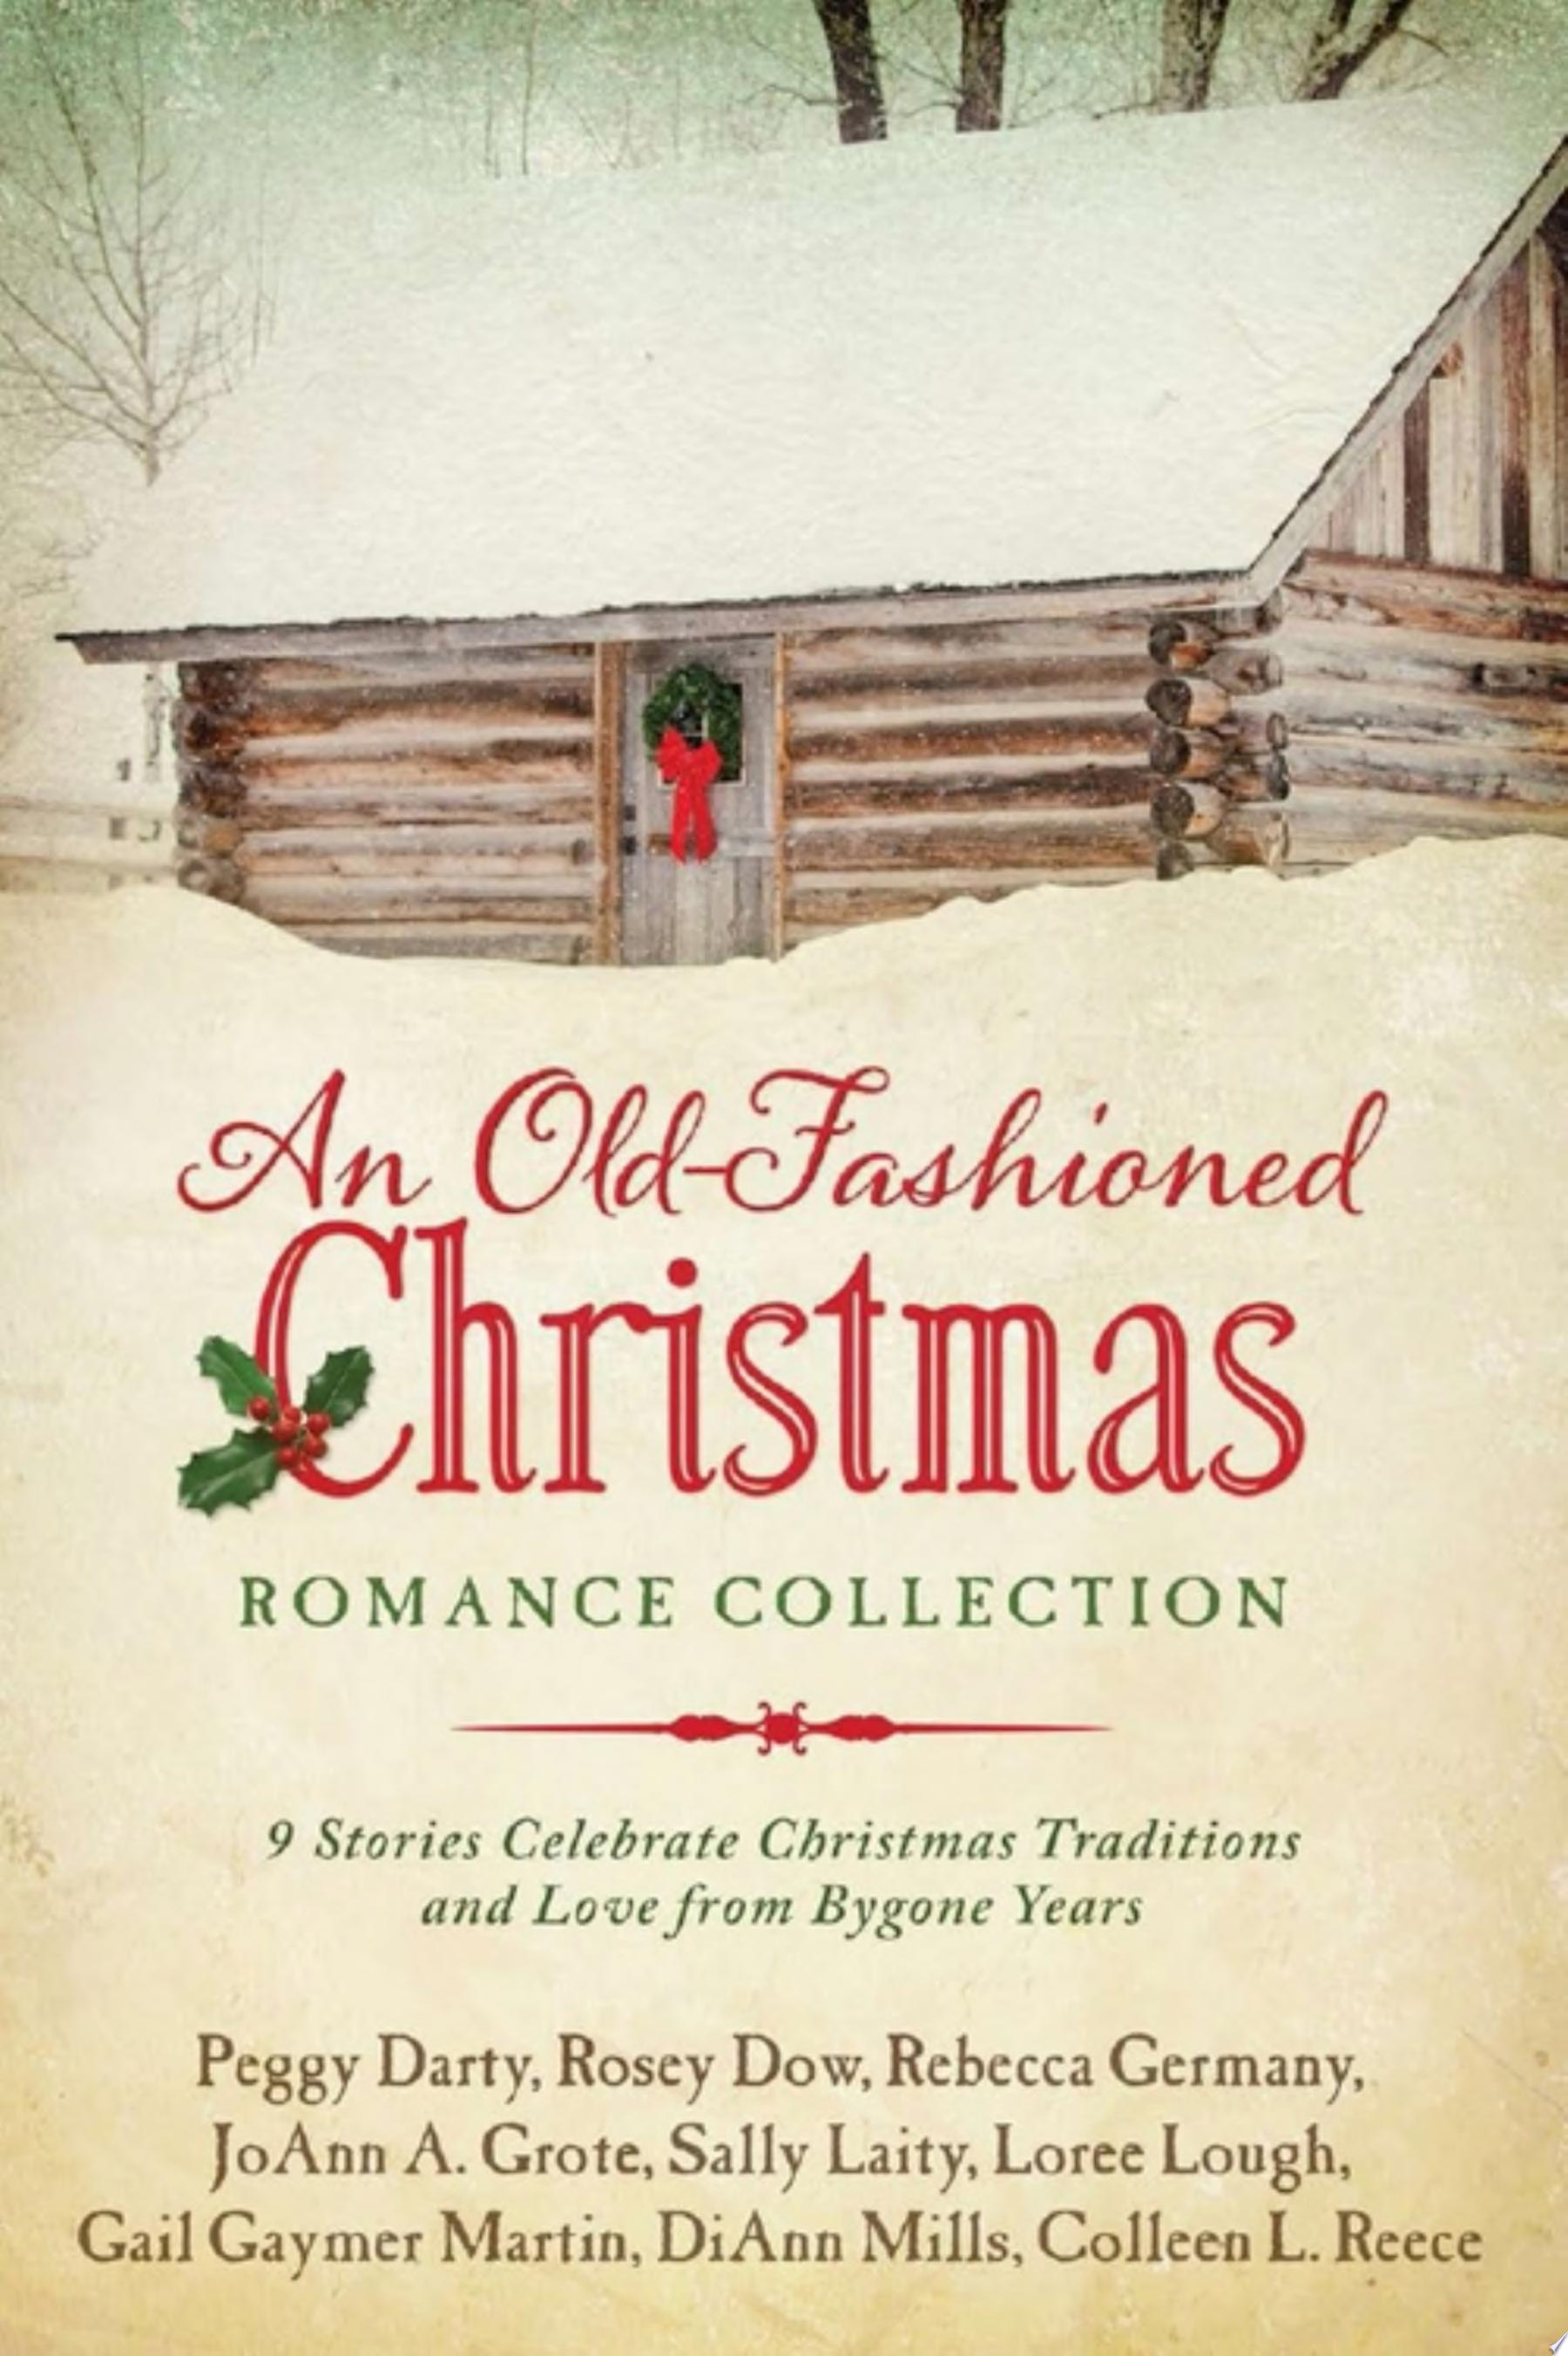 An Old Fashioned Christmas Romance Collection